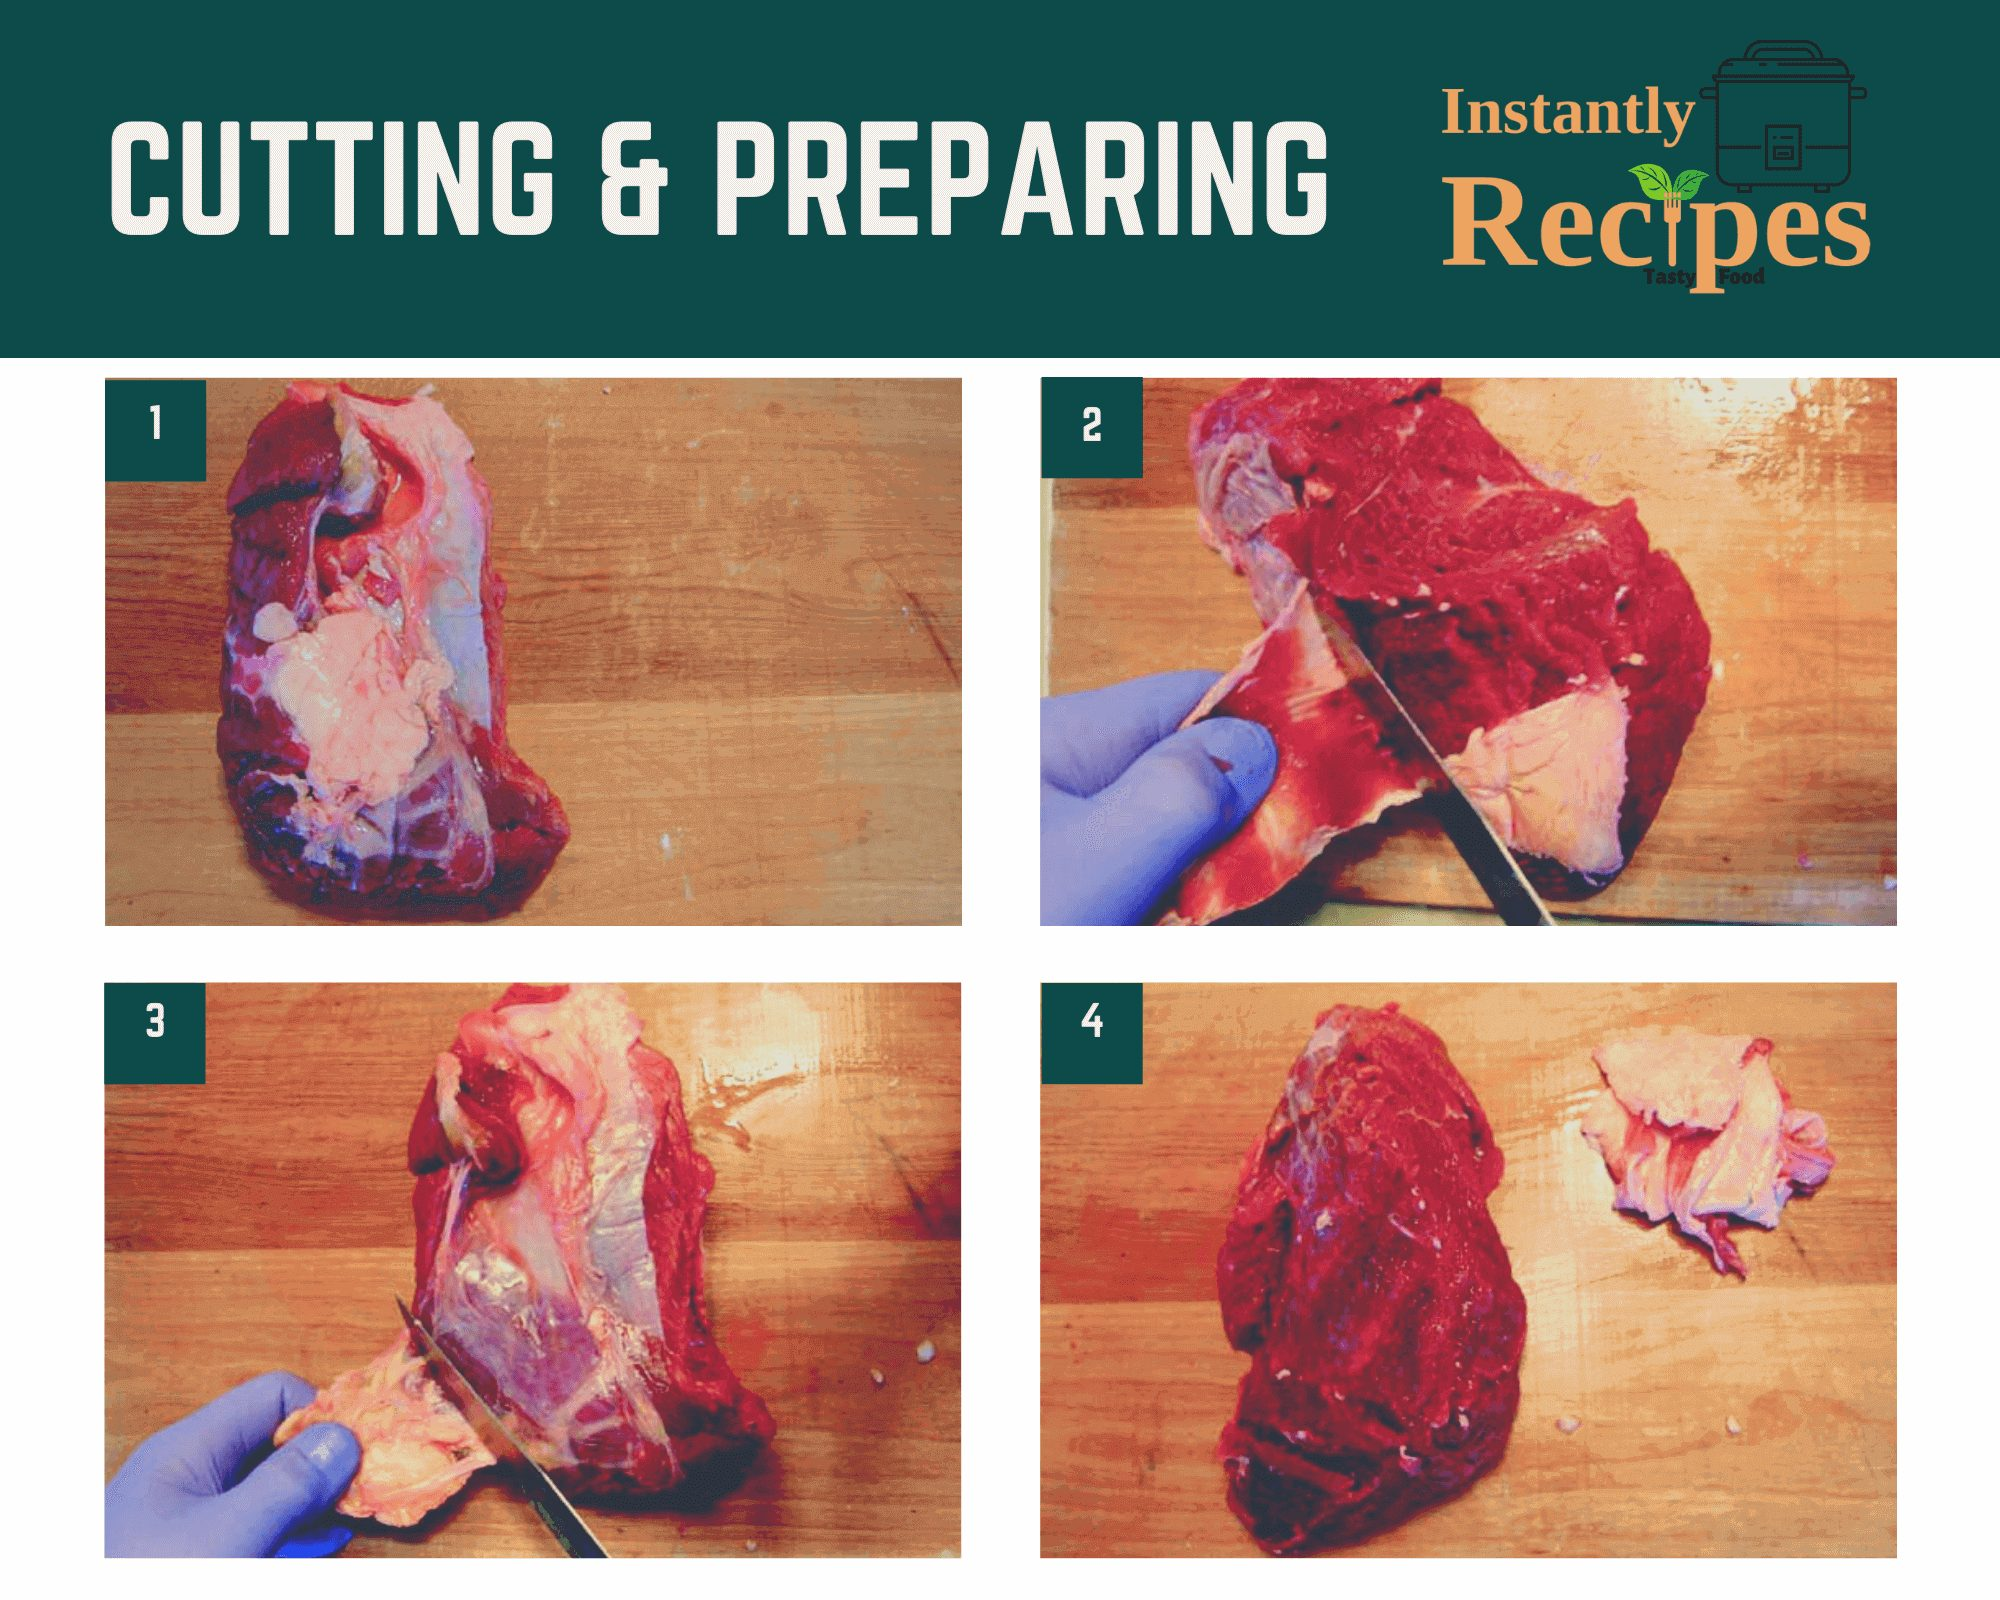 Cutting and preparing jerky